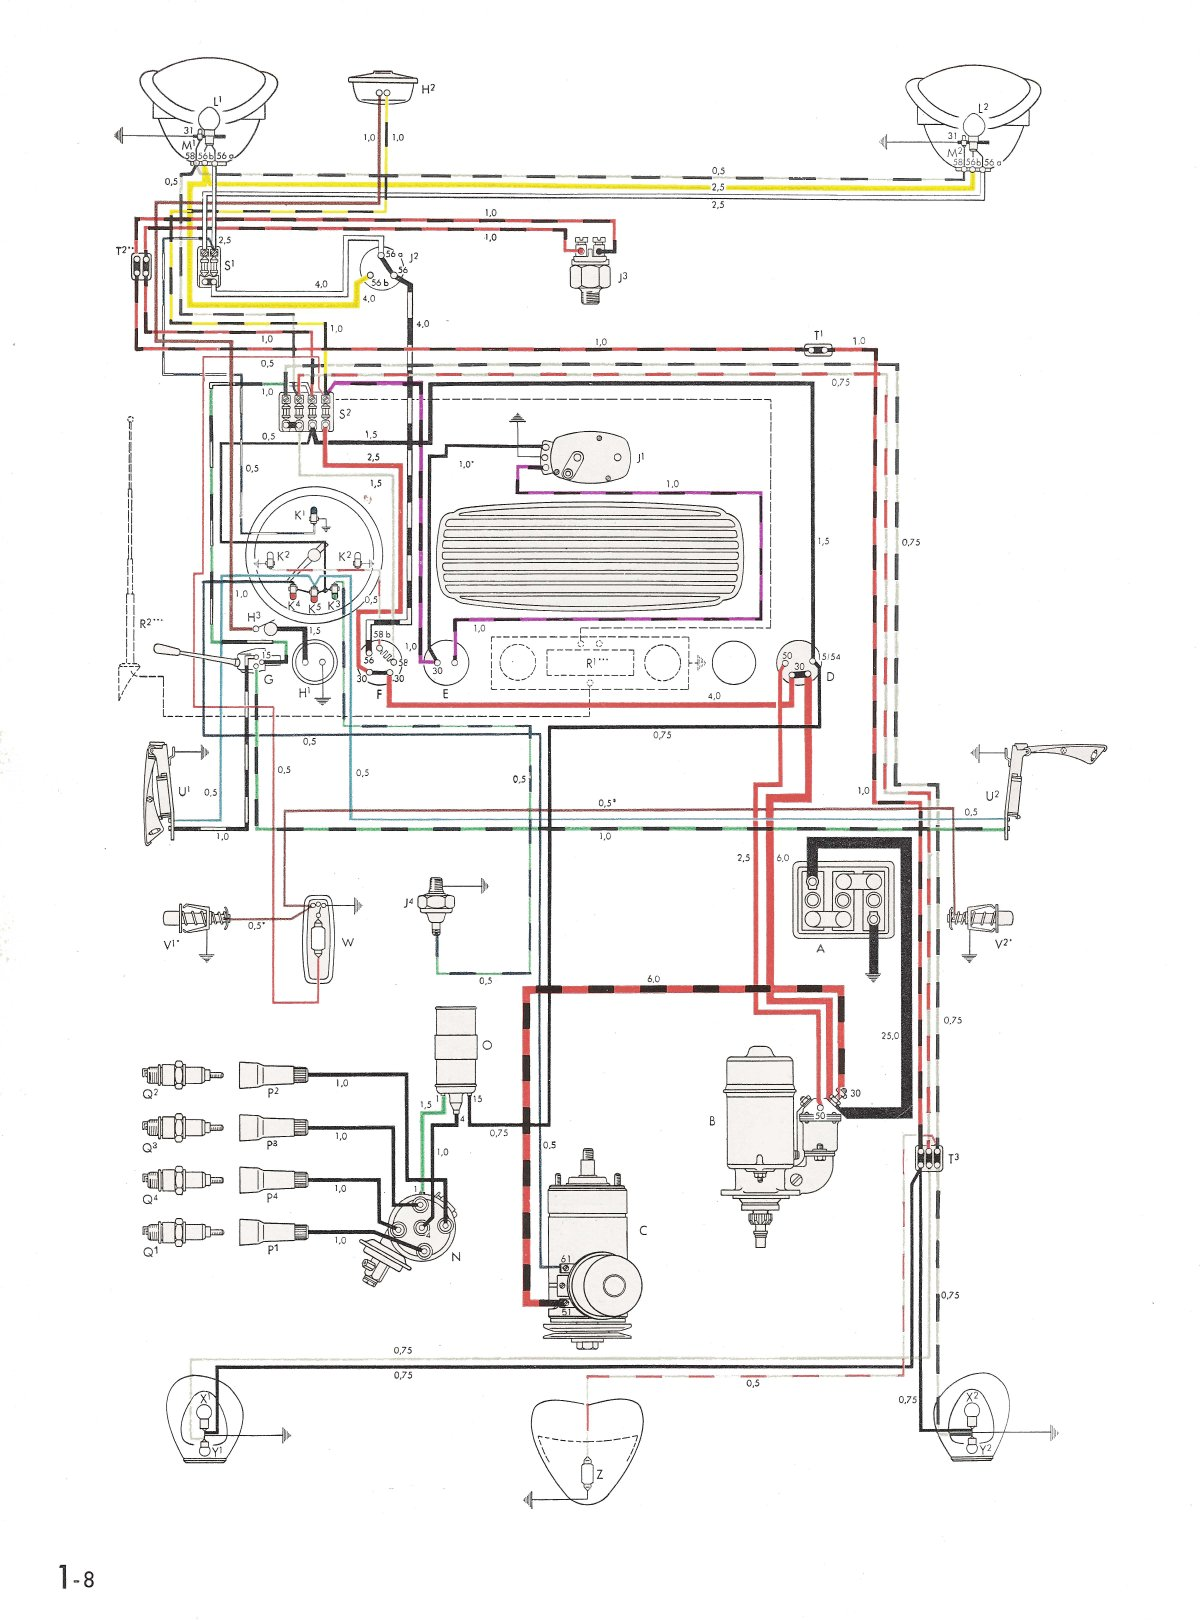 thesamba com type 1 wiring diagrams rh thesamba com 2006 volkswagen beetle wiring diagram 2006 vw beetle ac wiring diagram